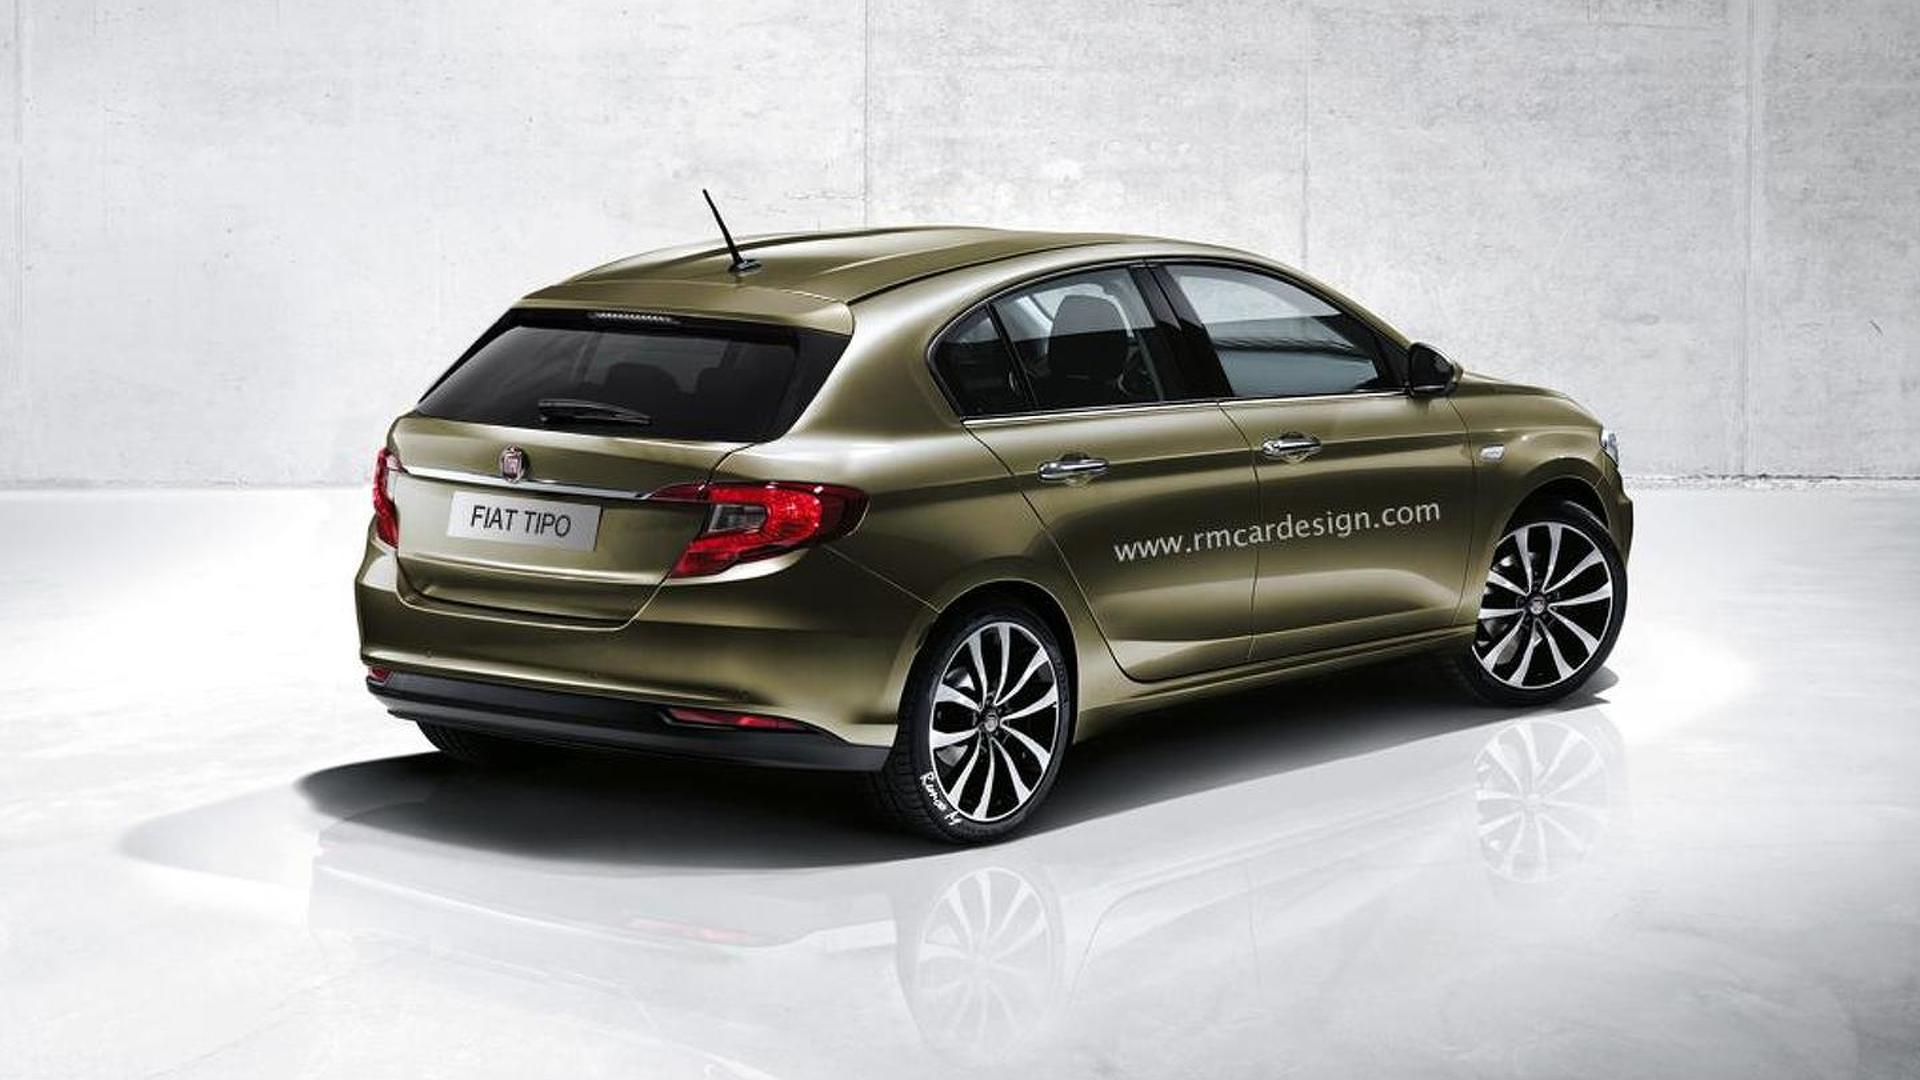 2016 Fiat Tipo hatchback render seems just about right